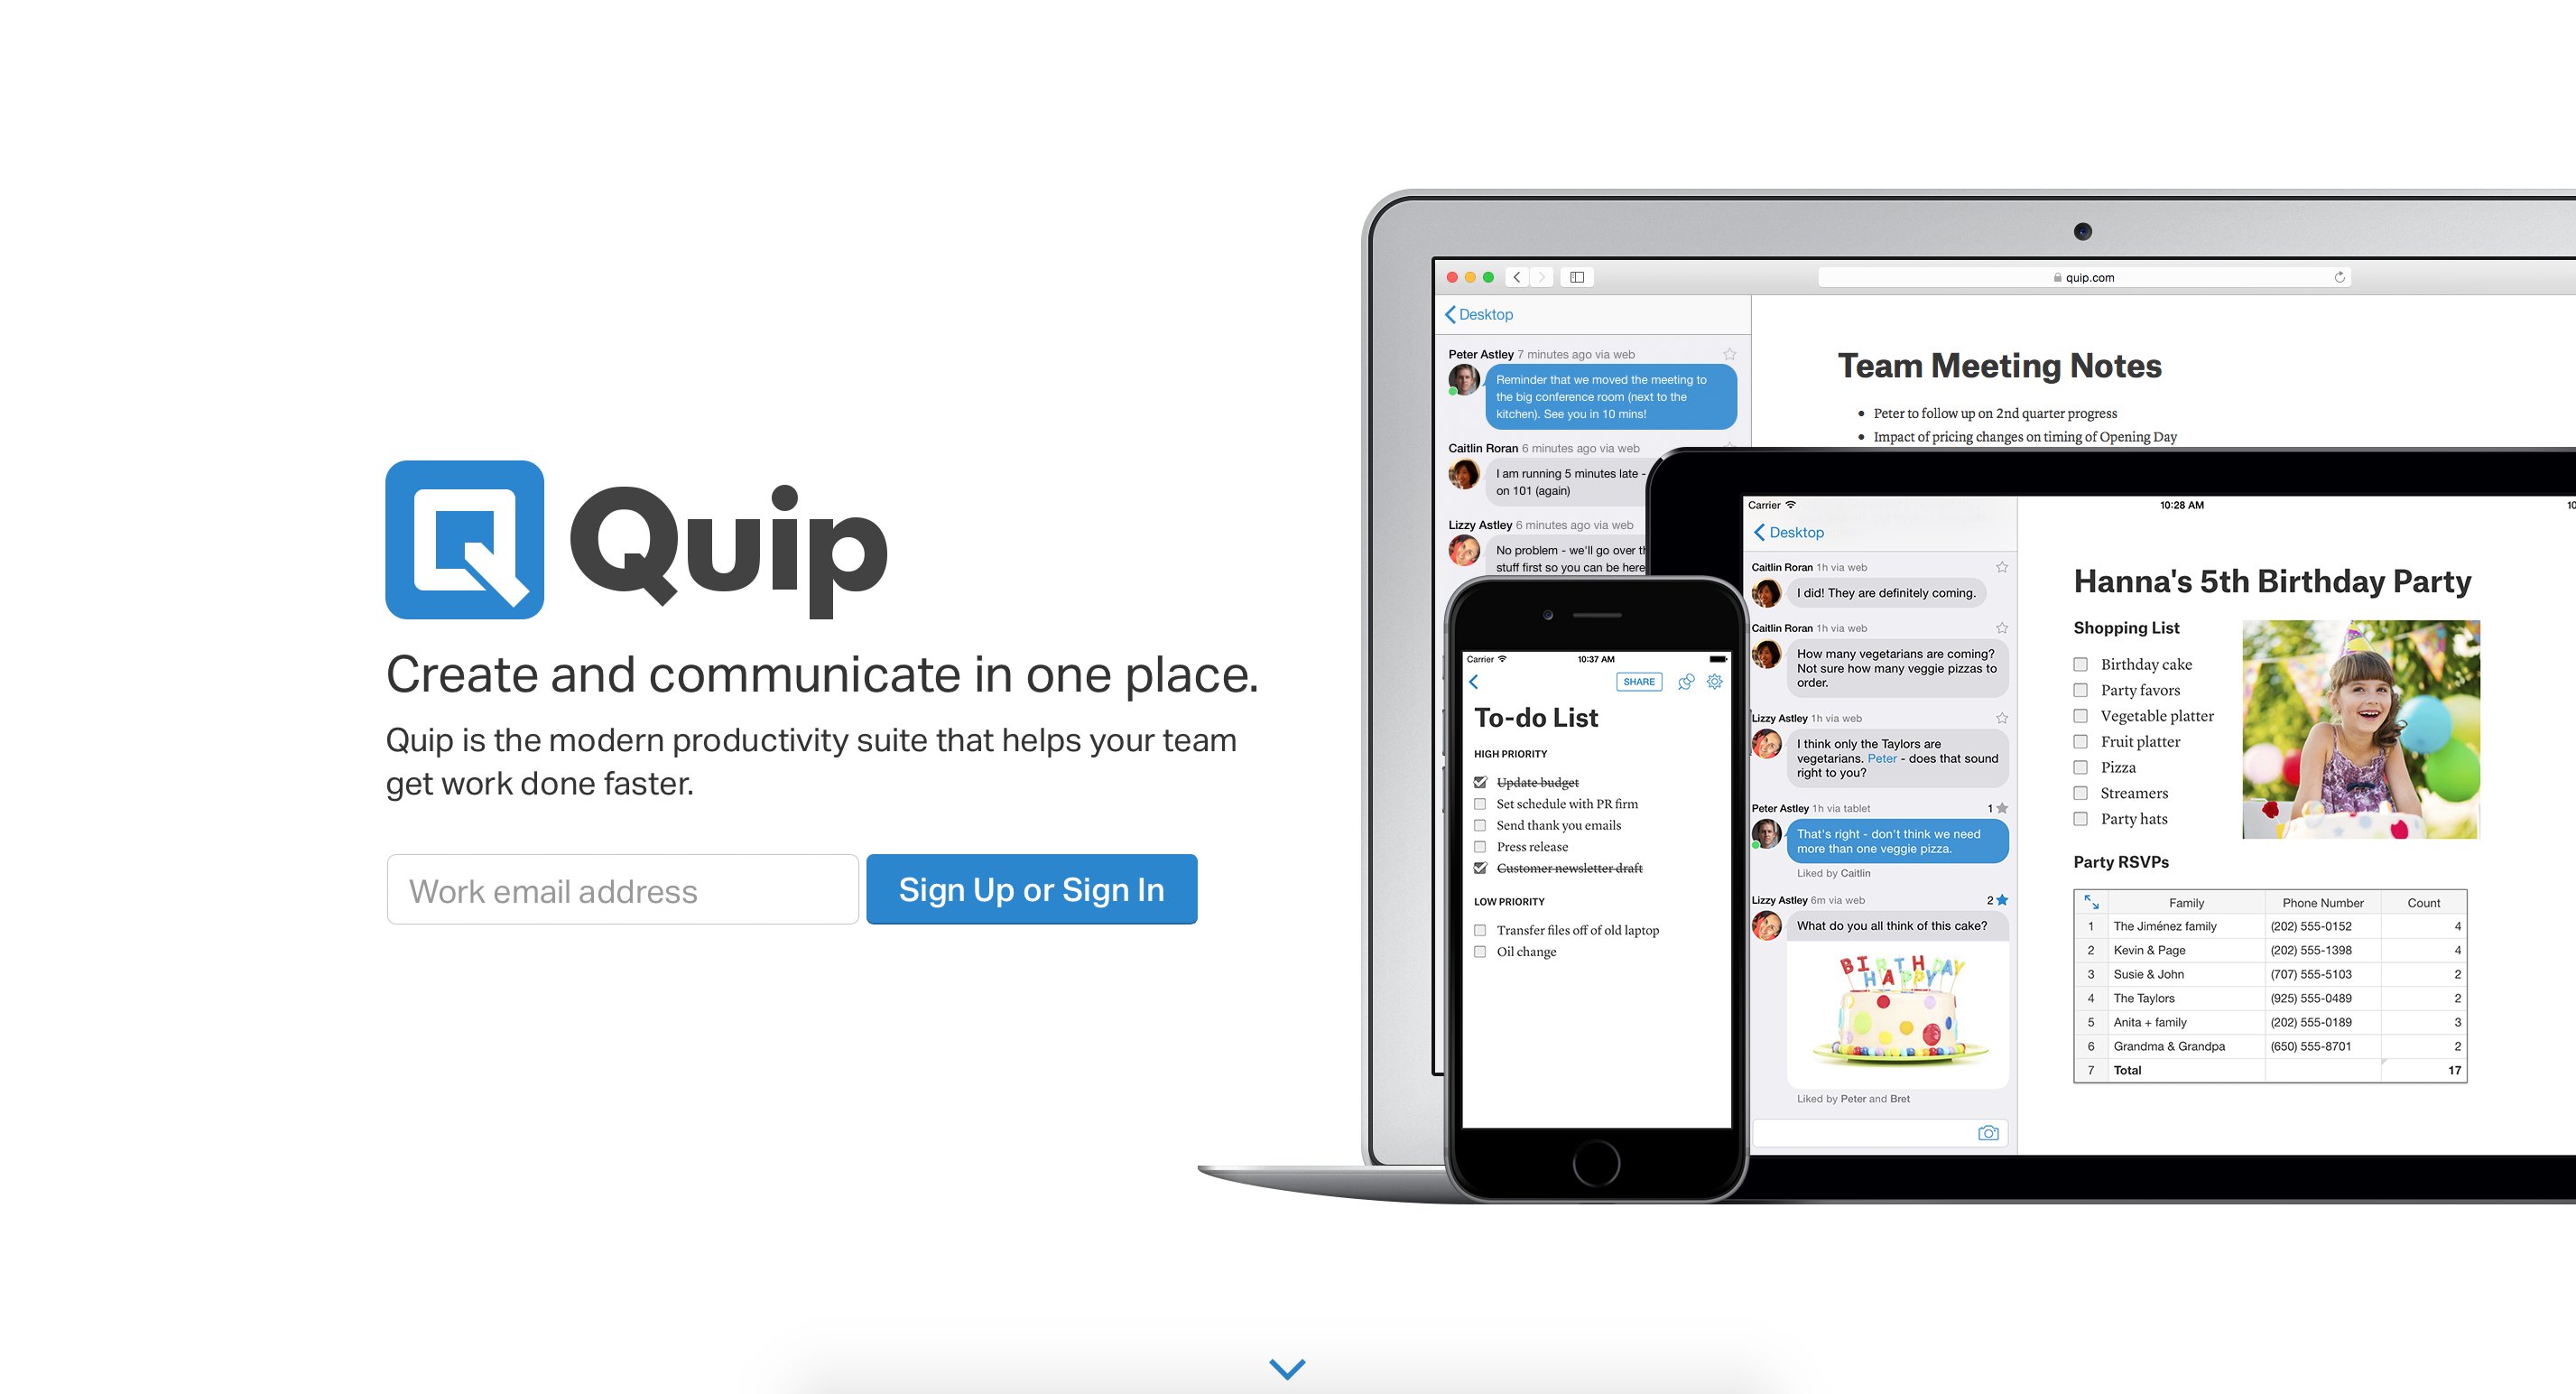 quip_software_suite.png